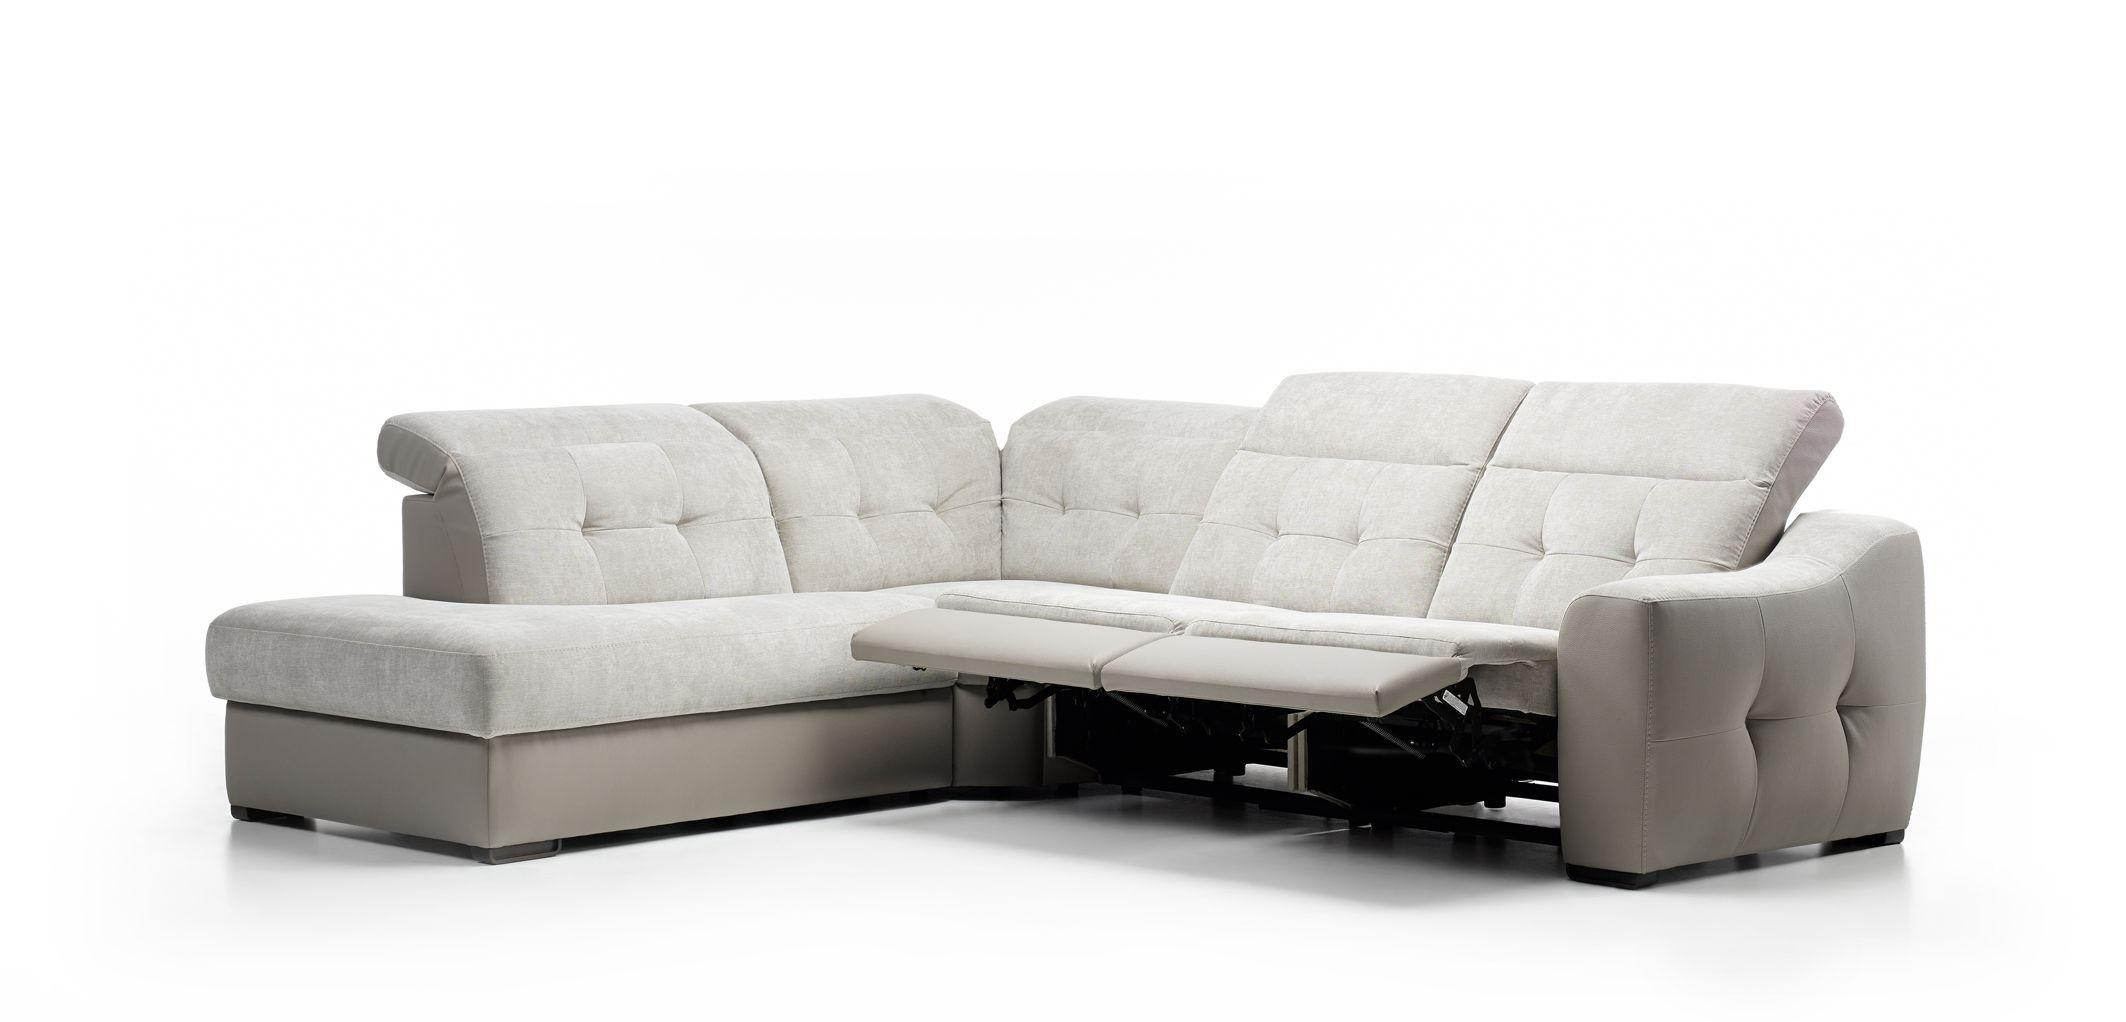 21 Inspirations Modern Sofas Sectionals